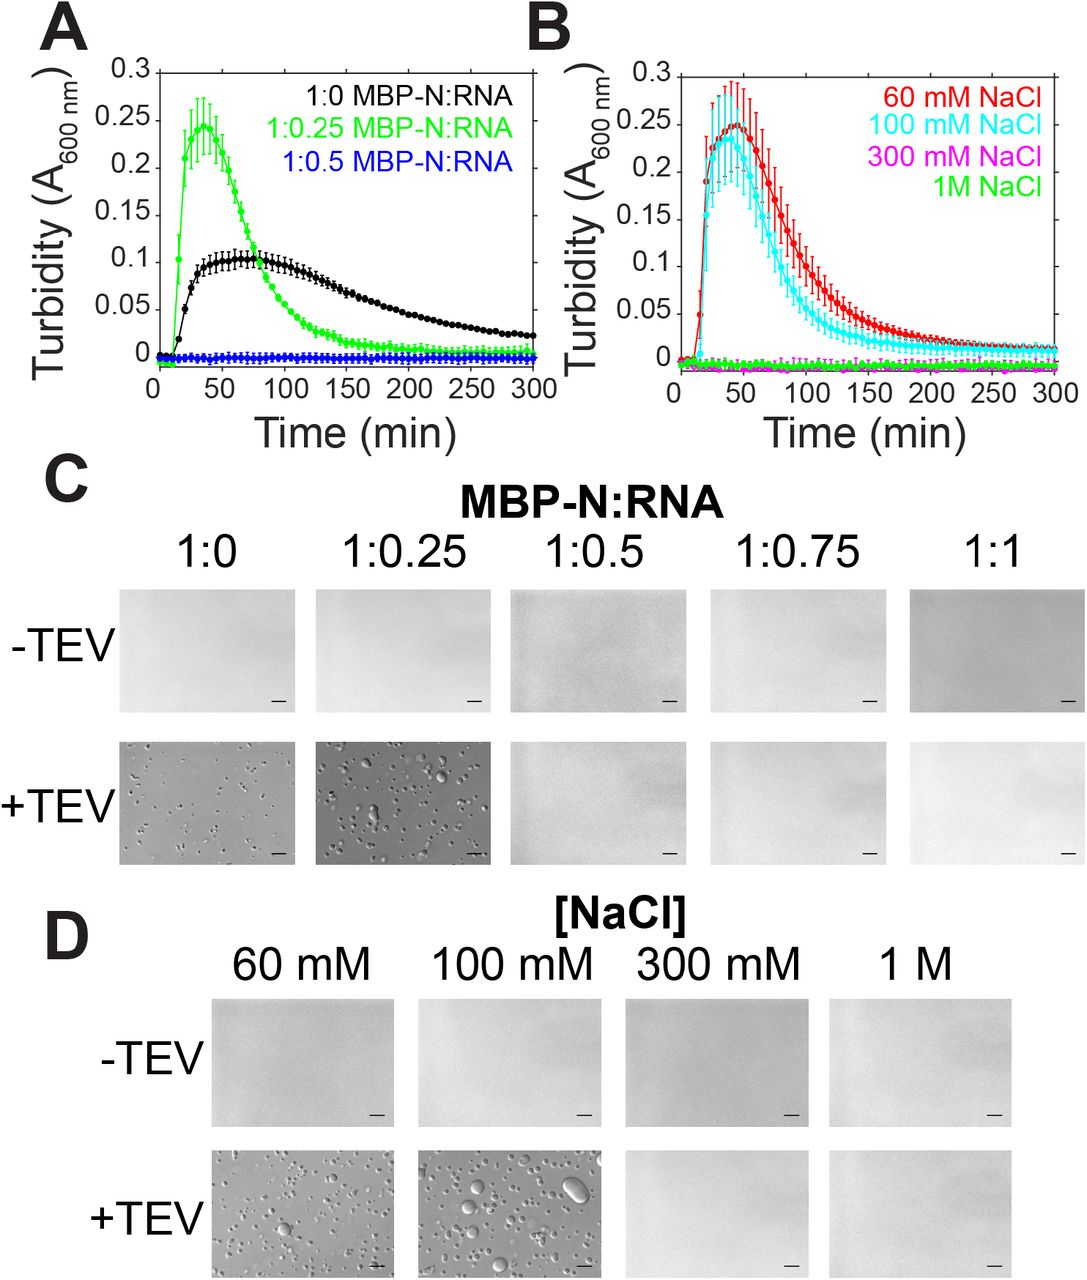 SARS-CoV-2 N LLPS is modulated by salt and RNA. A-B) Phase separation over time as monitored by turbidity of 50 μM MBP-N in 50 mM Tris pH 7.4 after addition of TEV protease with varying torula yeast RNA (at 100 mM sodium chloride) or varying sodium chloride concentrations. C-D) DIC micrographs of 50 μM MBP-N in 50 mM Tris NaCl pH 7.4 with varying torula yeast RNA or sodium chloride concentrations with and without TEV protease (to cleave MBP from N). Scale bars represent 50 μm.